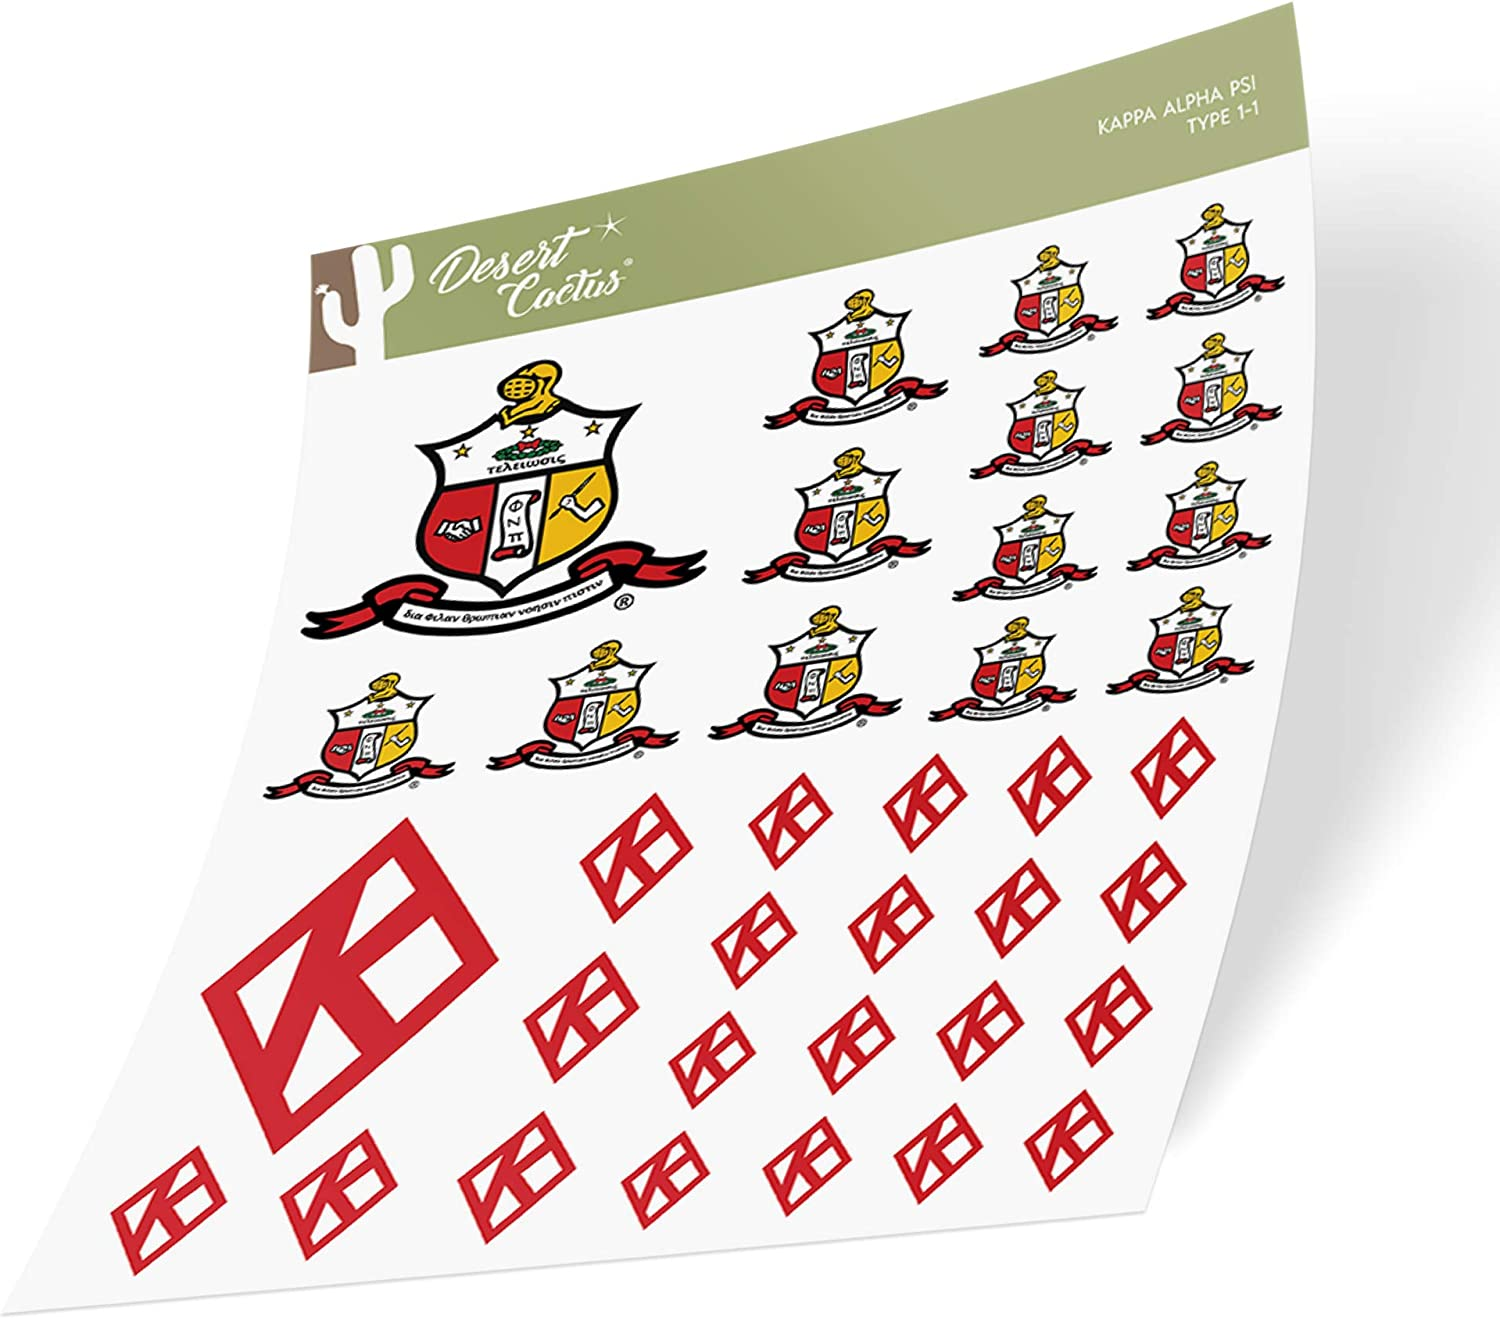 Kappa Alpha Psi Multiple Size Sticker Decal Laptop Water Bottle Car (Sheet - Type 1)